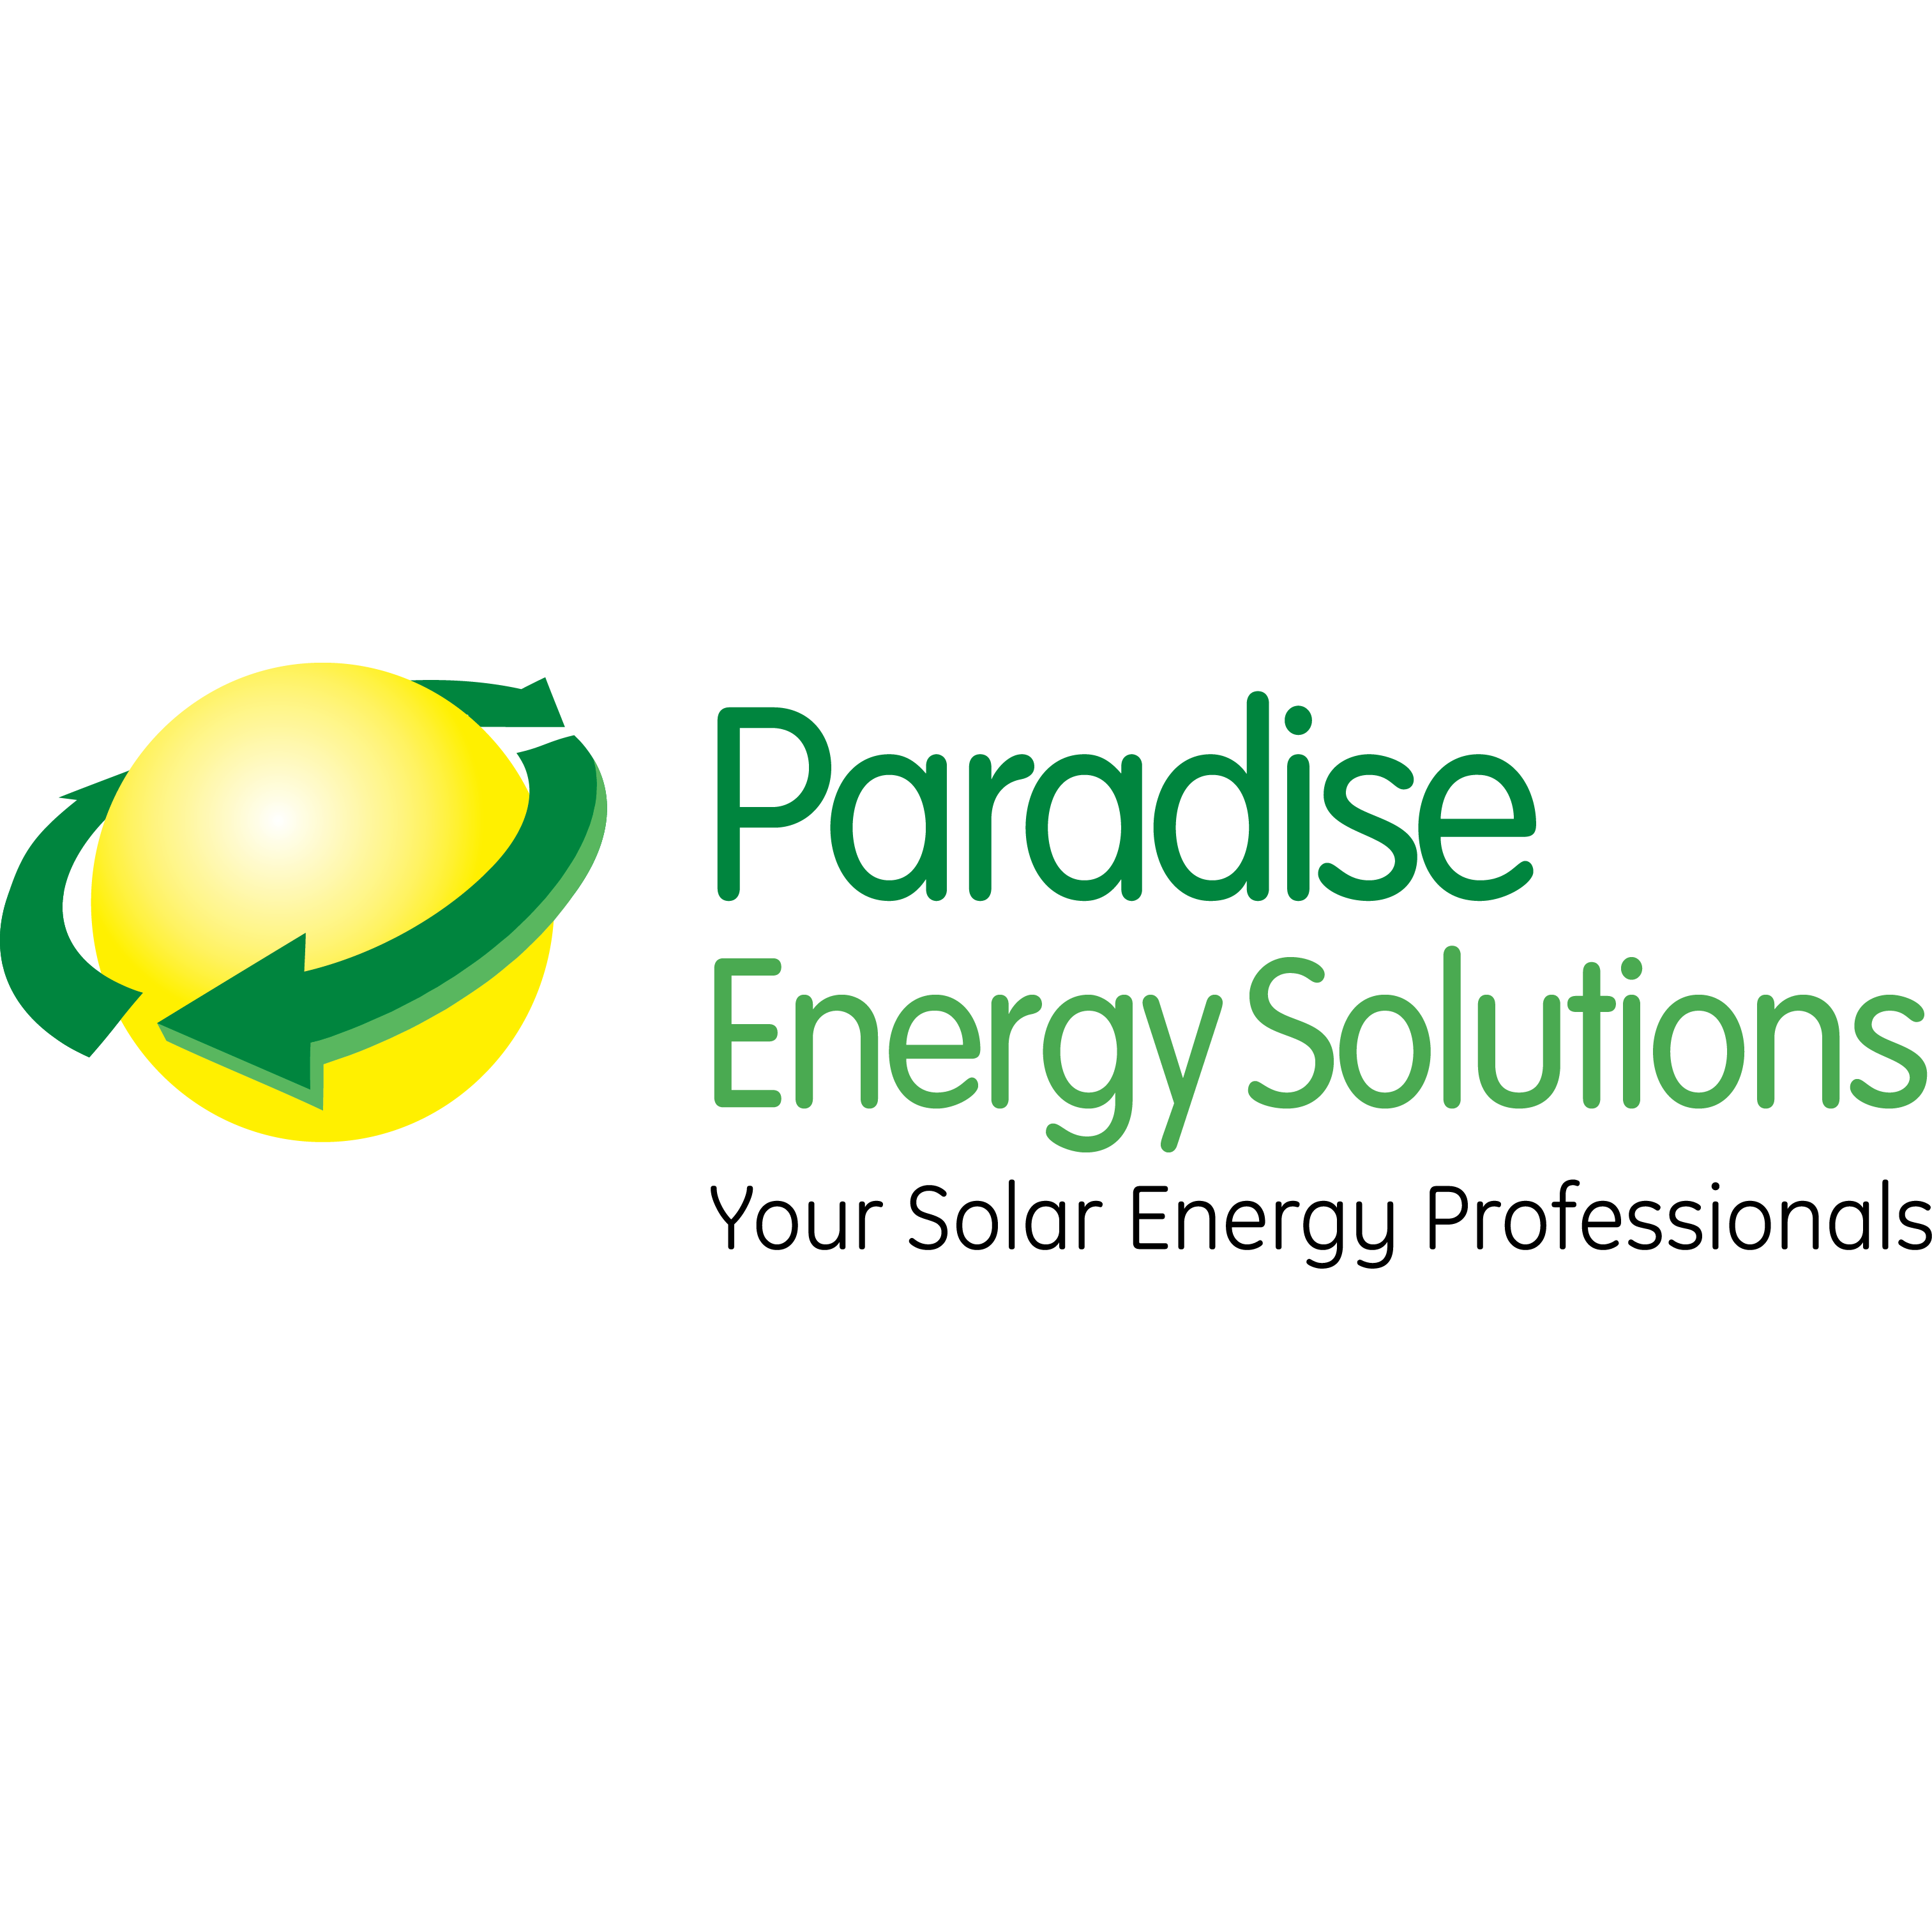 Paradise Energy Solutions